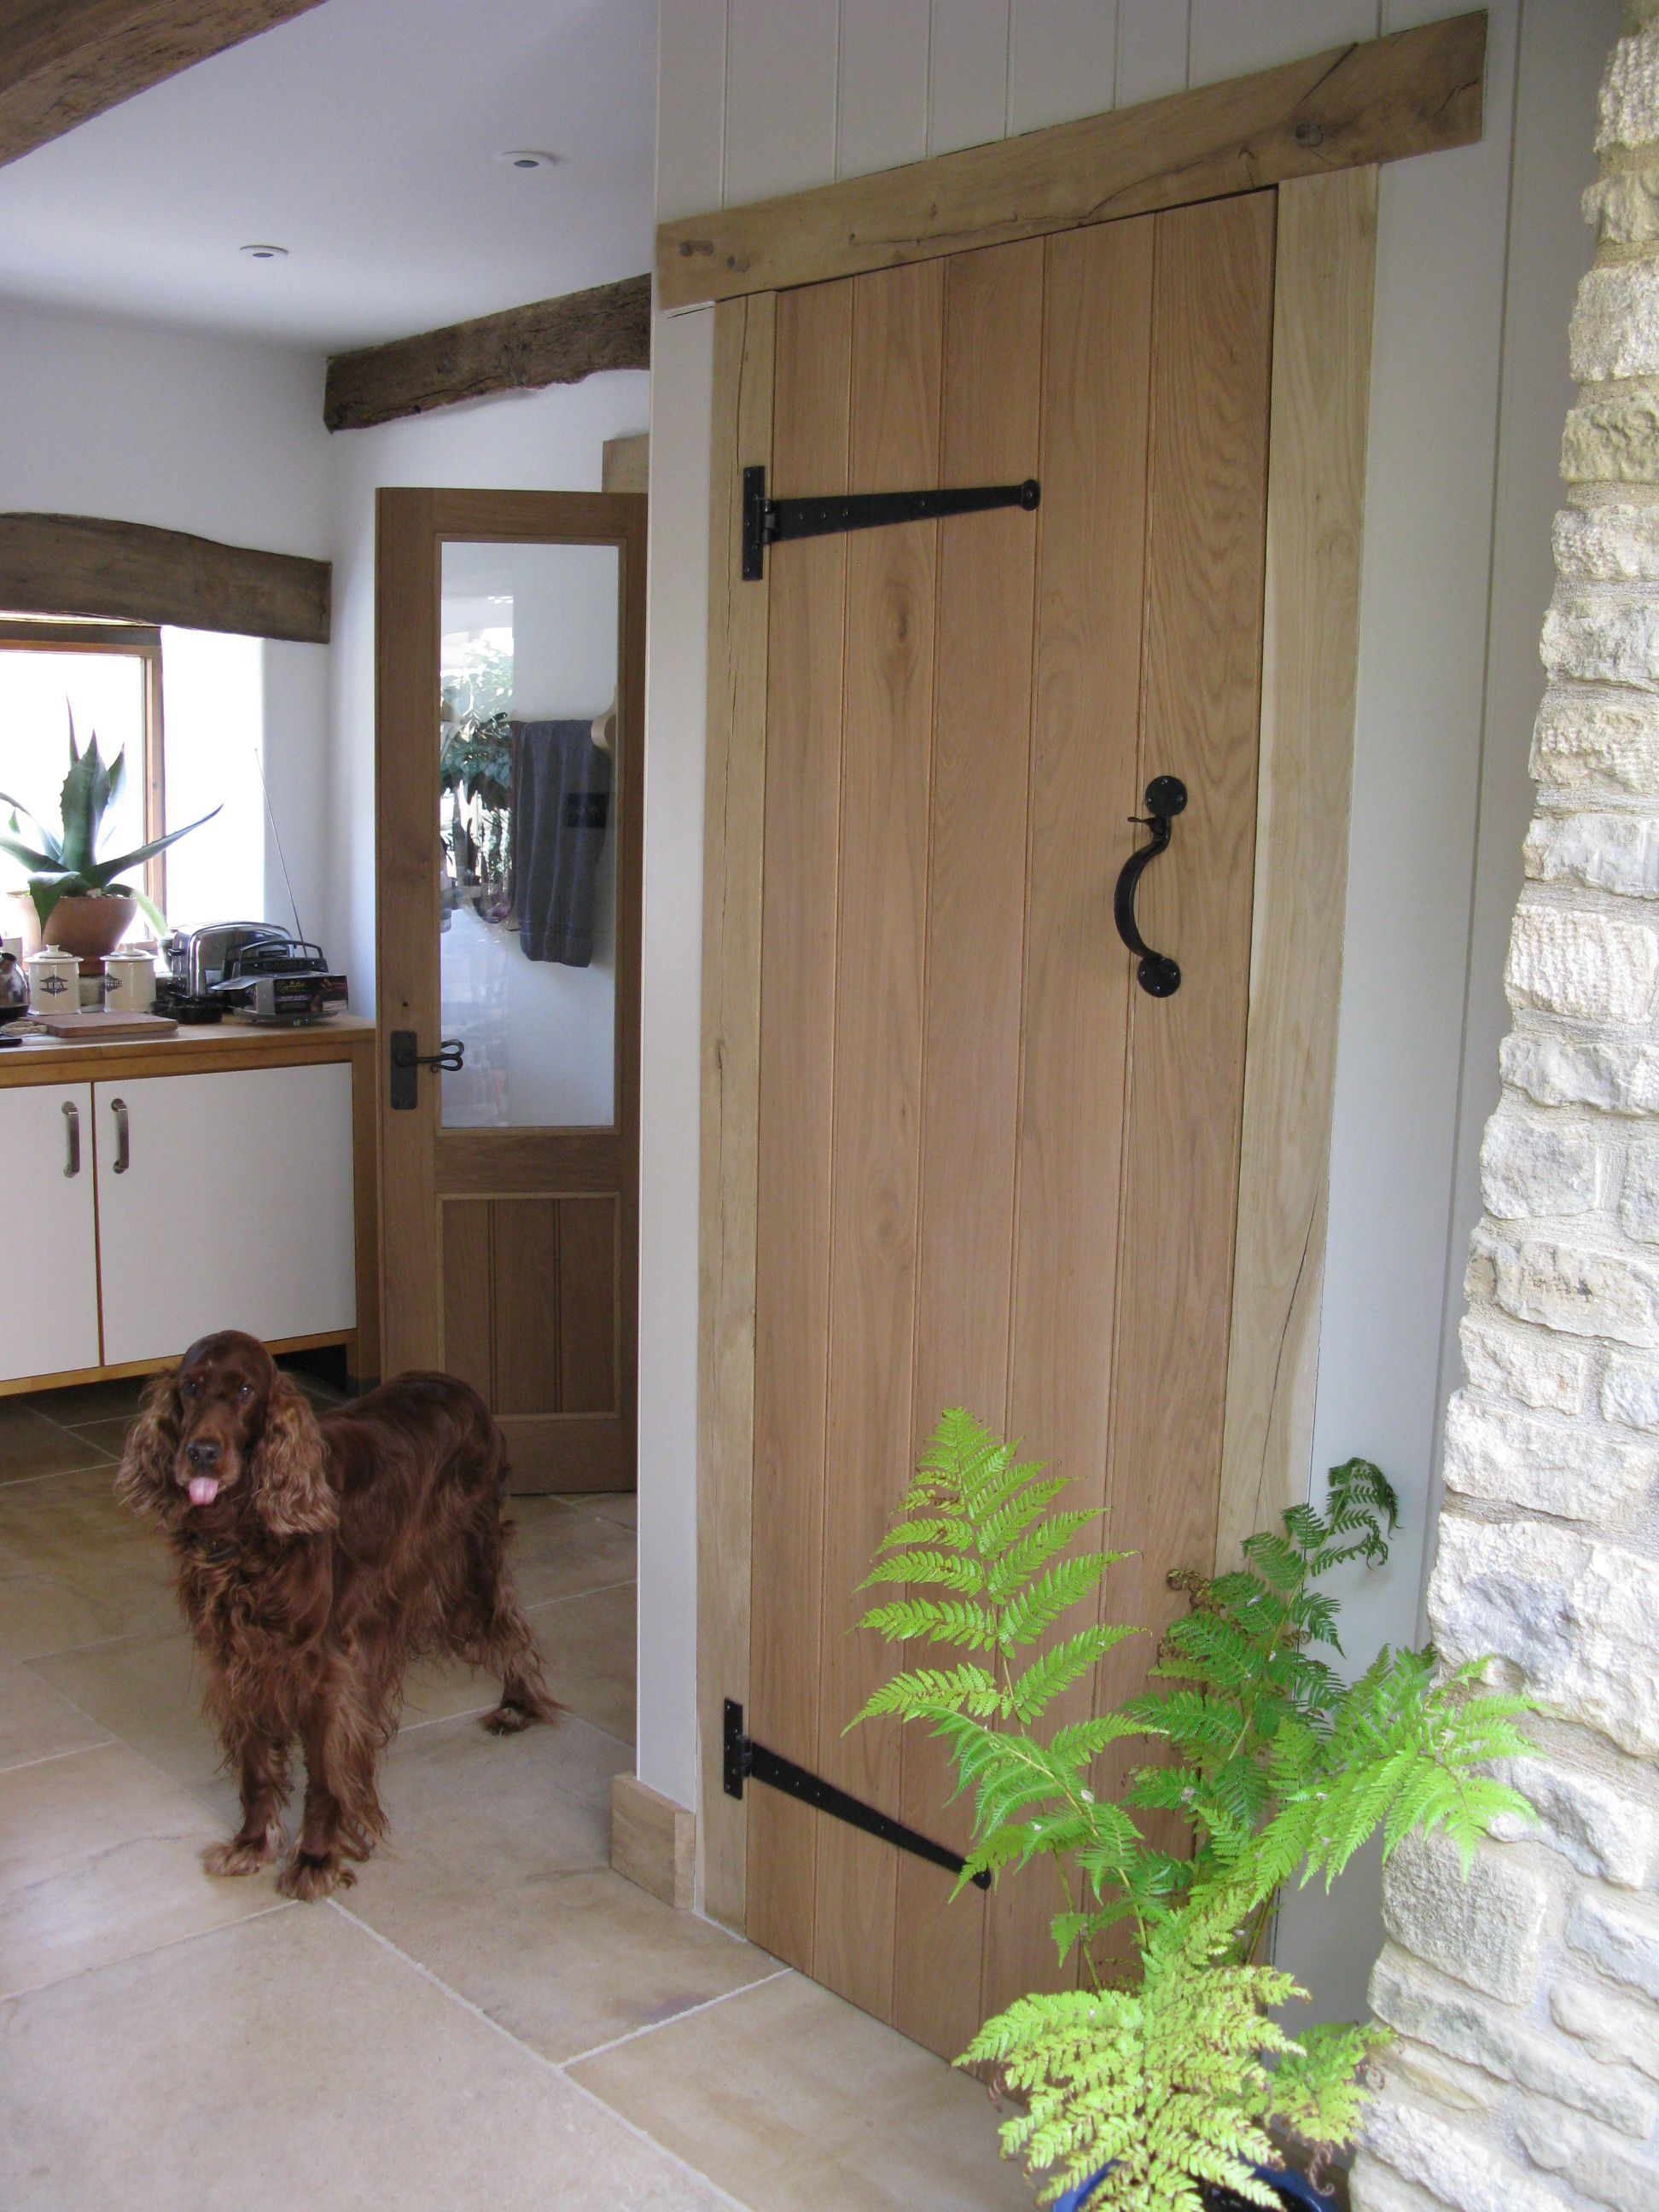 Ledge and brace oak doors - Look At This Adorably Cheeky Dog Sticking His Tongue Out Stood In Fron Of His Solid Oakbraces